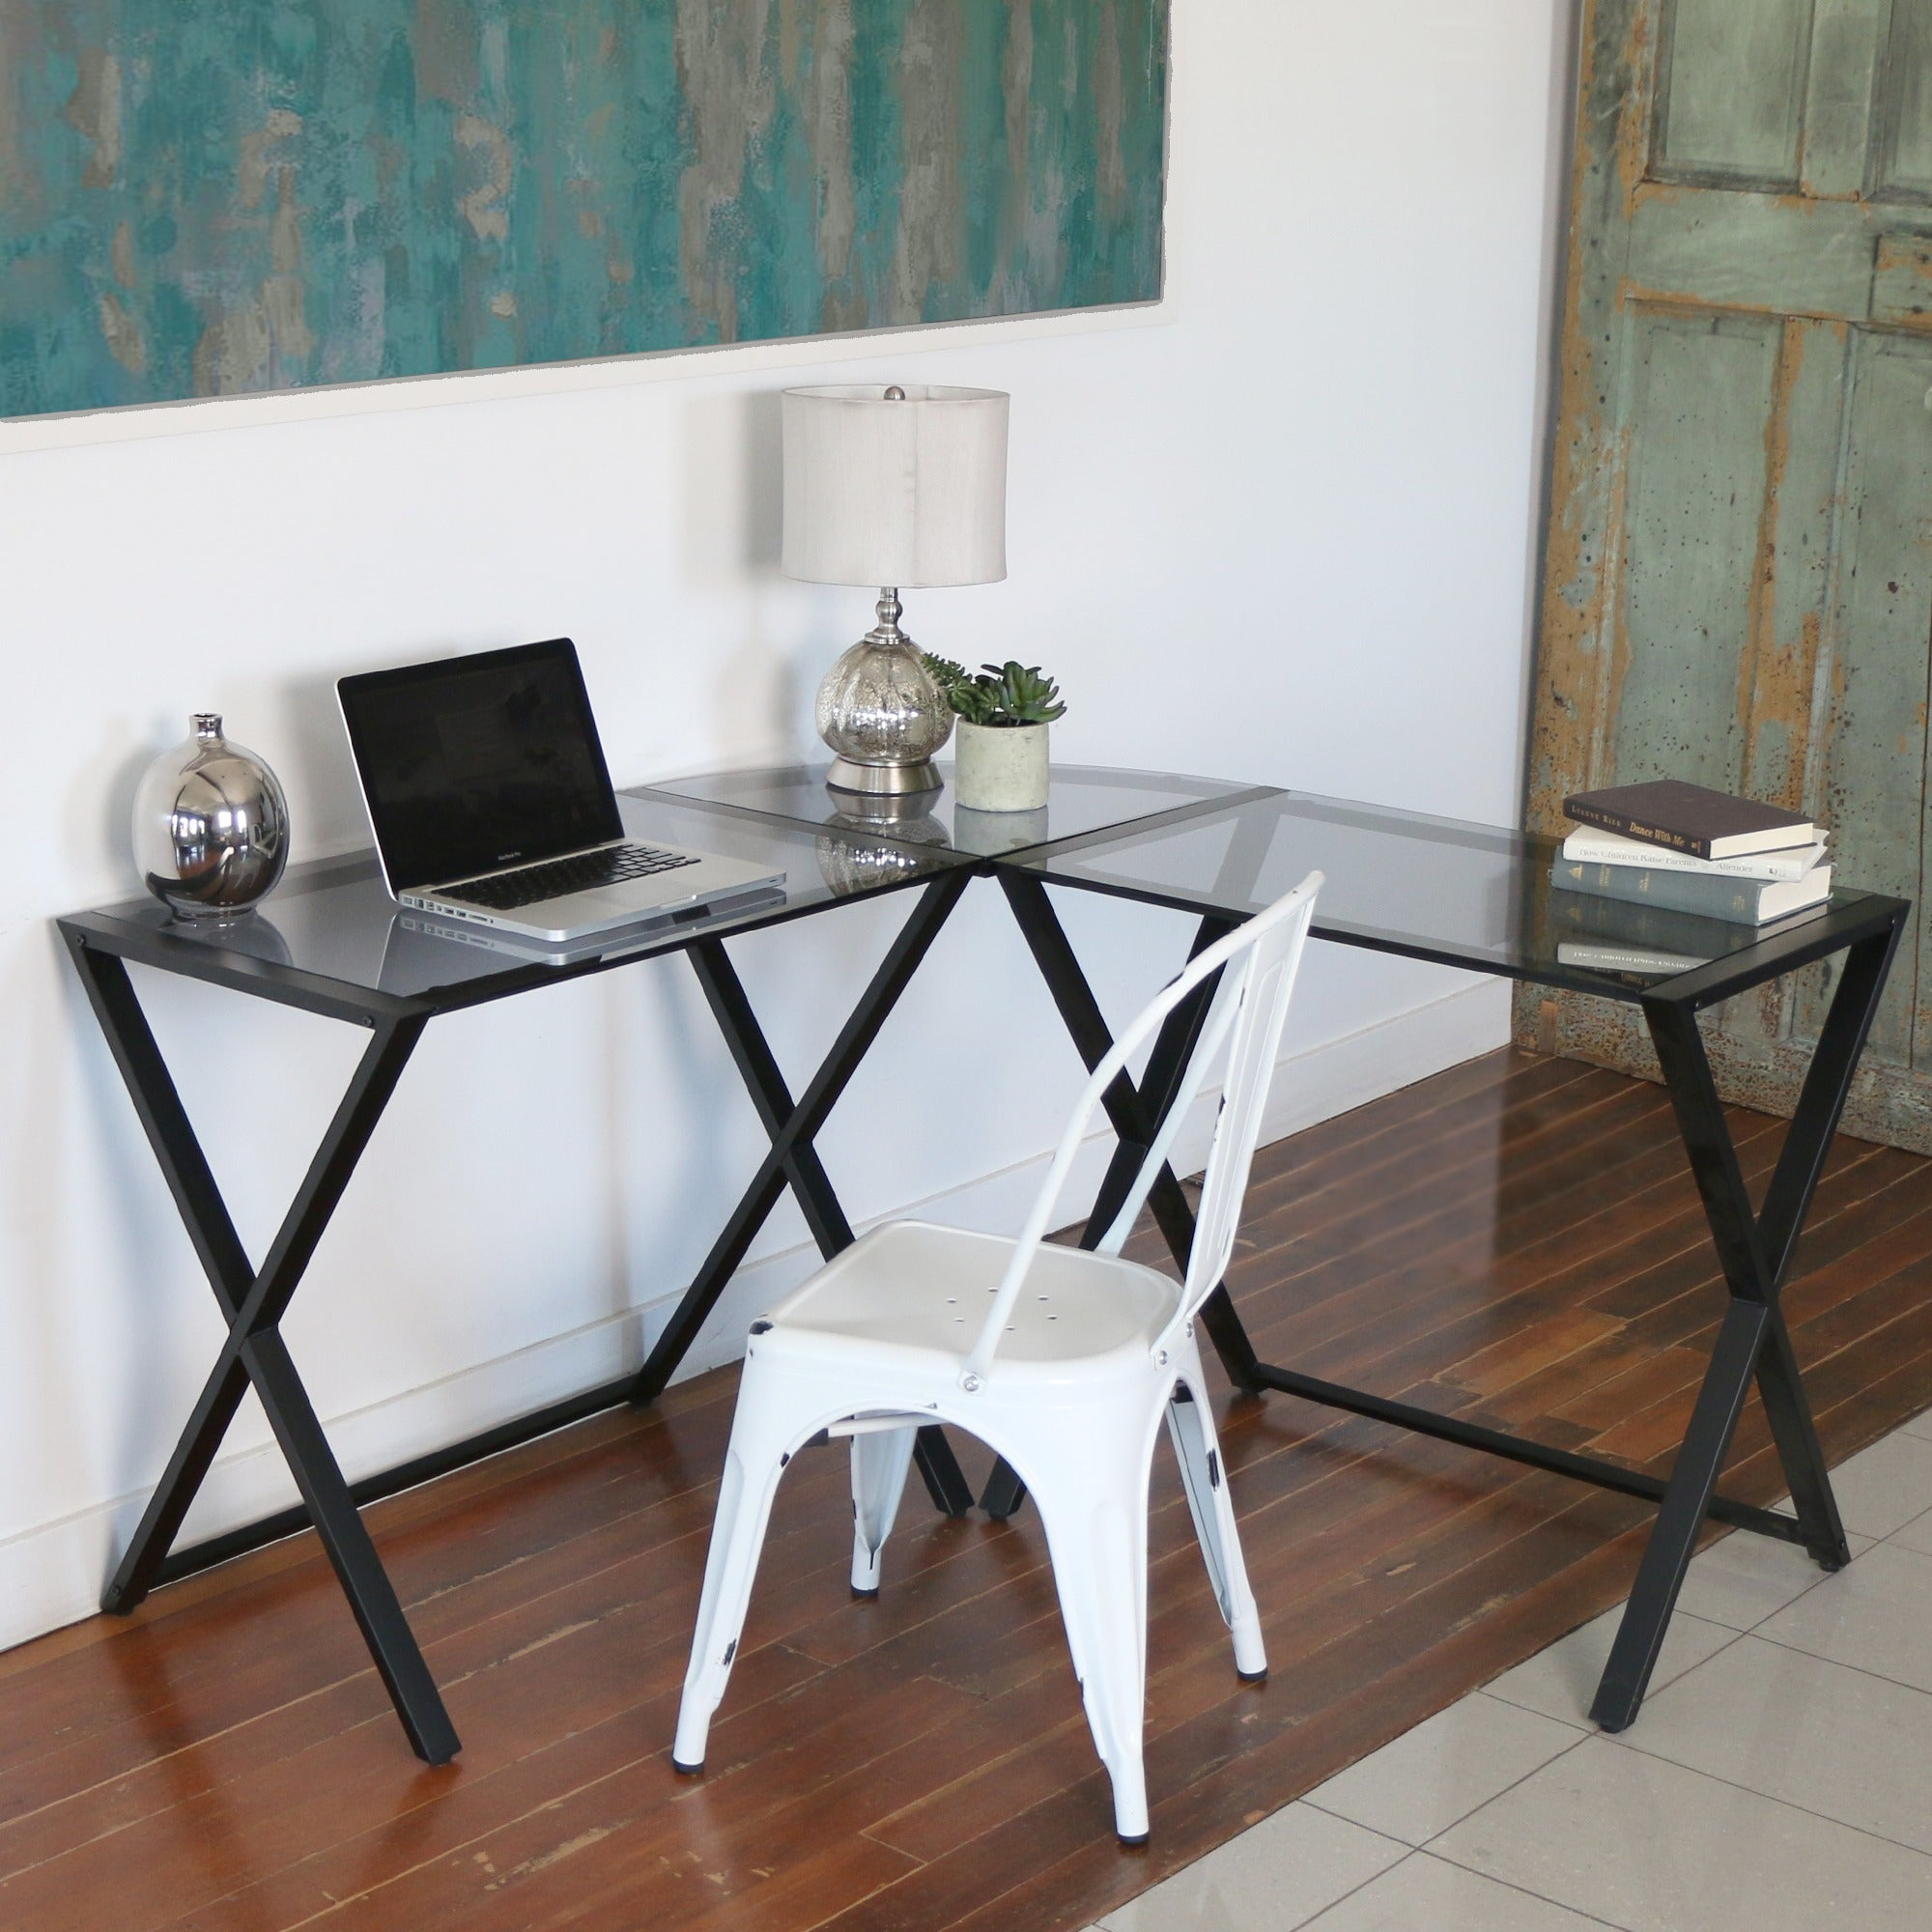 X-frame Smoked Glass and Metal L-shaped Computer Desk (X-...